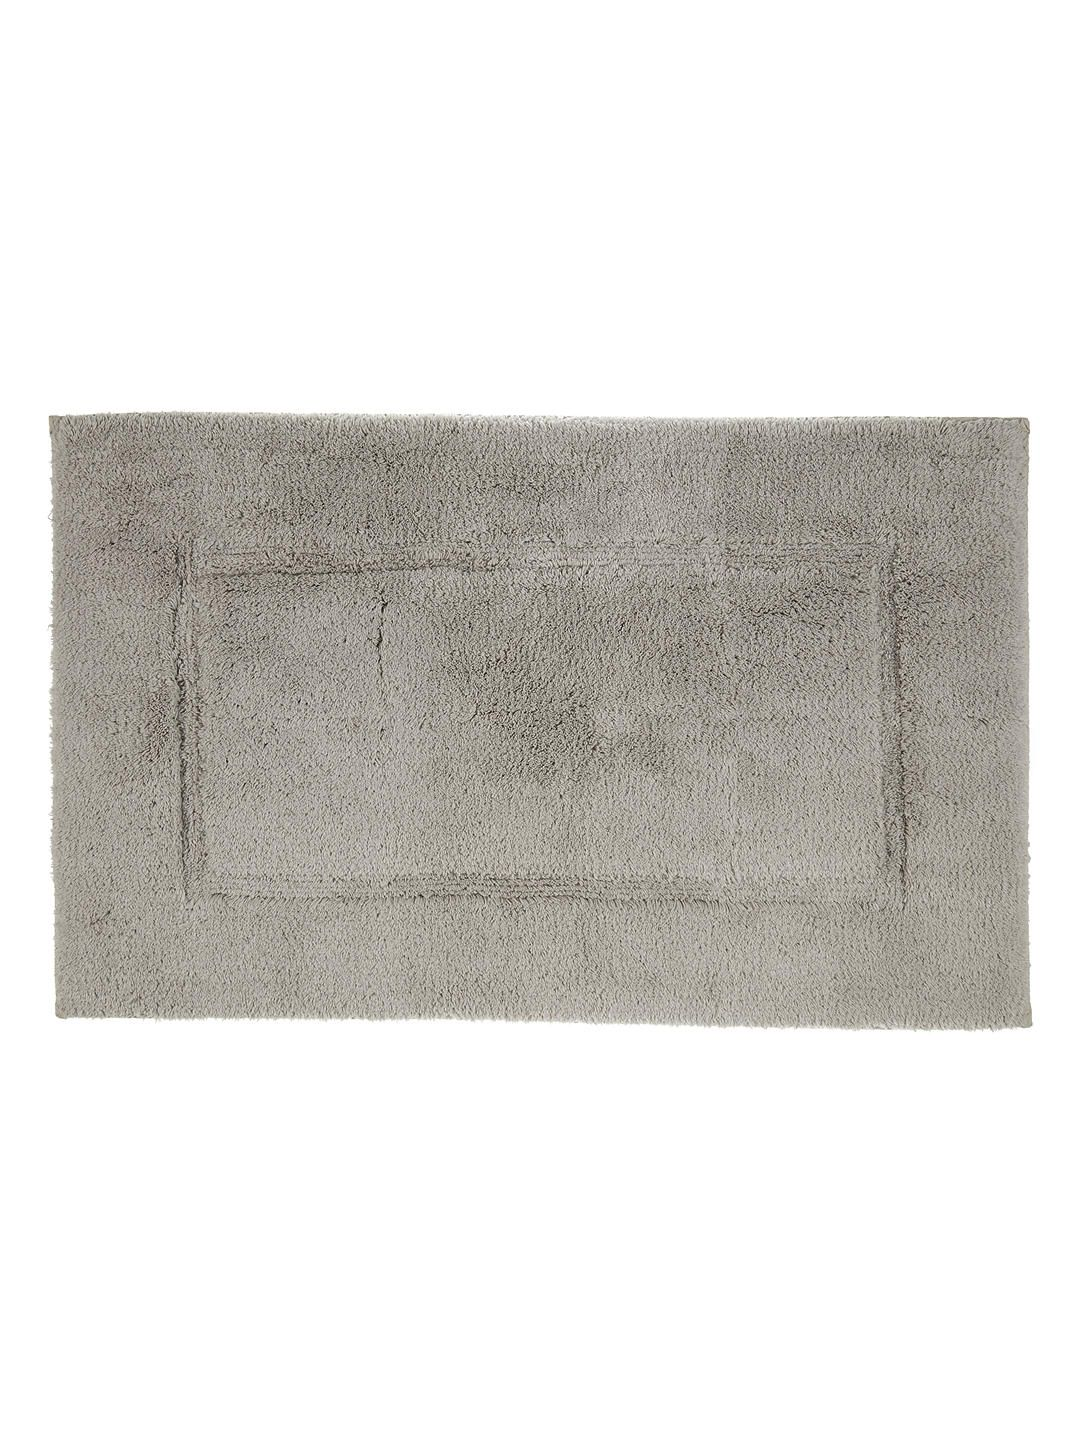 John Lewis Partners Large Deep Pile Bath Mat With Mircofresh Technology 60 X 100cm Carbon Grey Bath Mat Egyptian Cotton Towels Bath